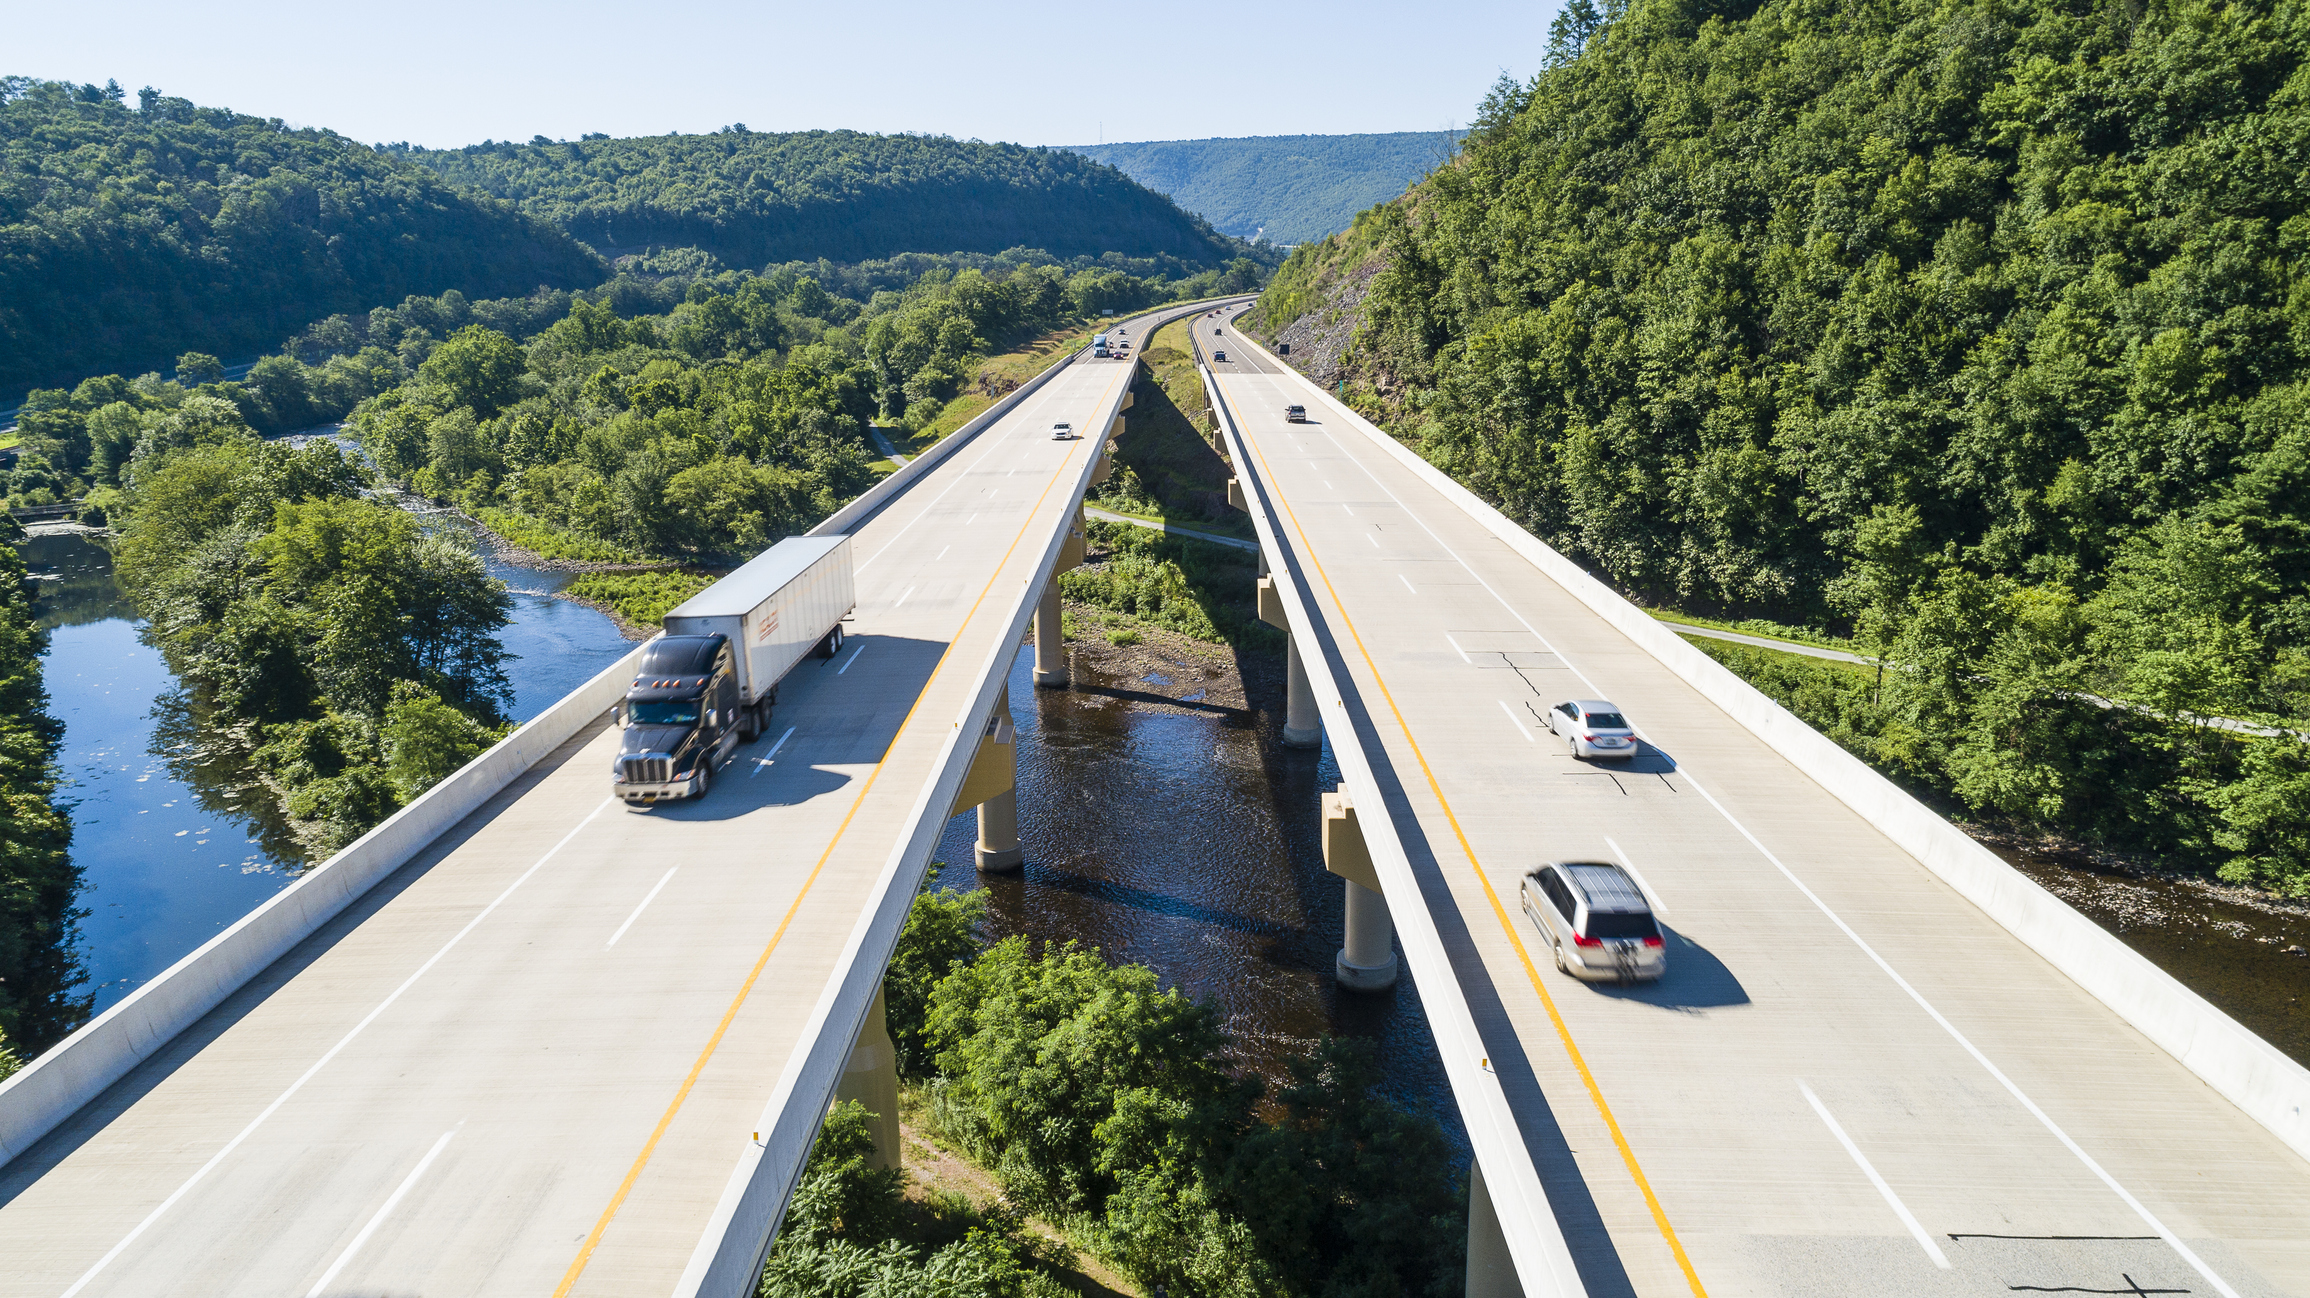 Transportation impacts due to trucks and cars travelling through mountains on bridge spanning river